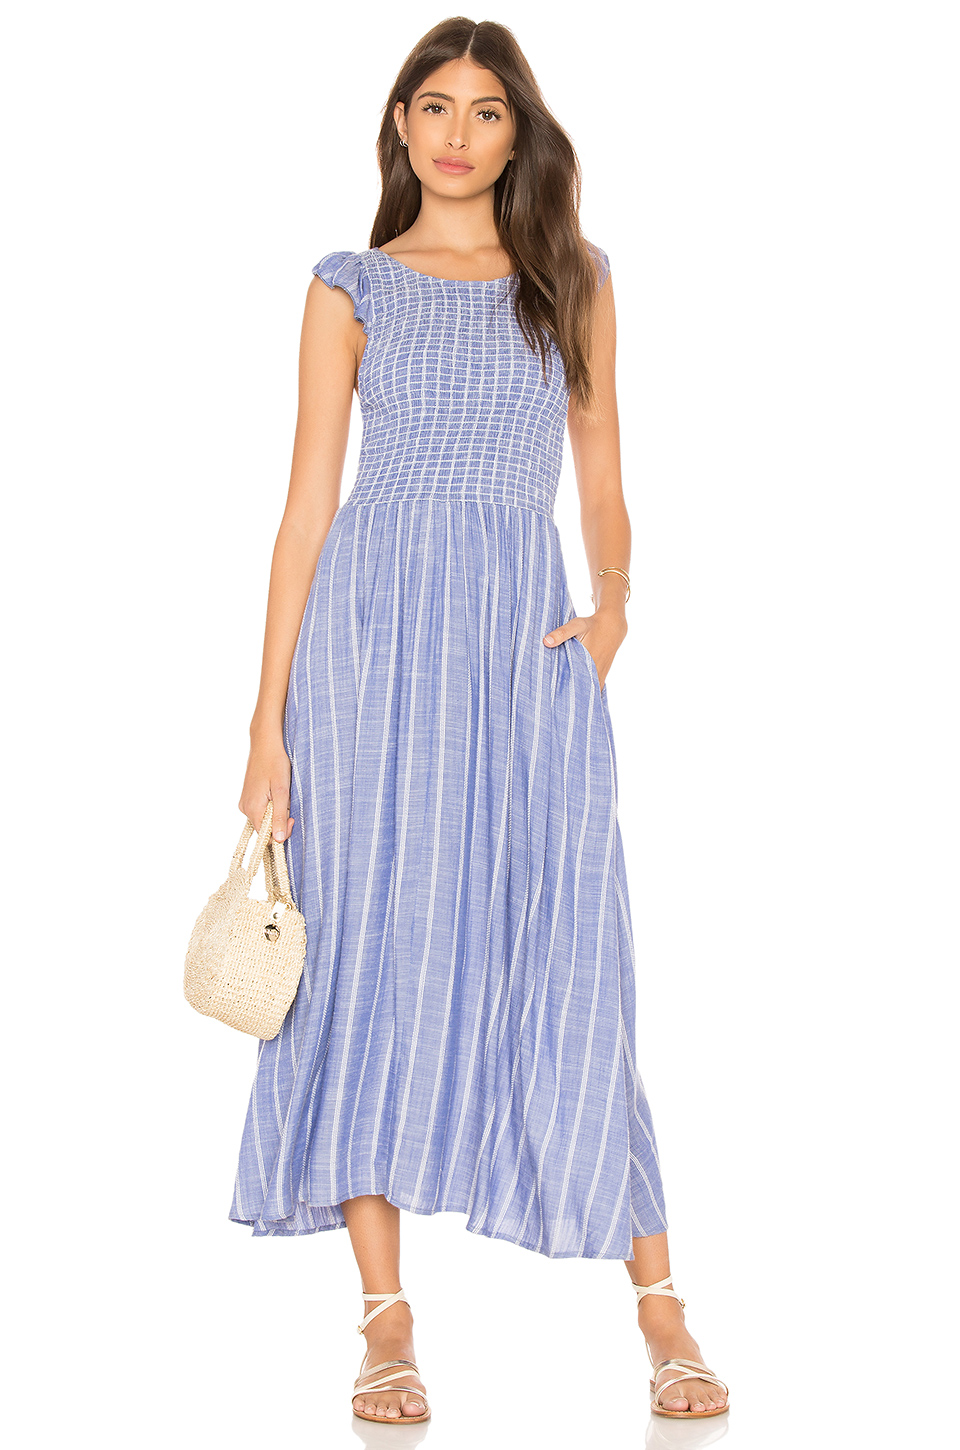 8d5d46bdc157 Buy Original Free People Chambray Butterflies Midi Dress at ...